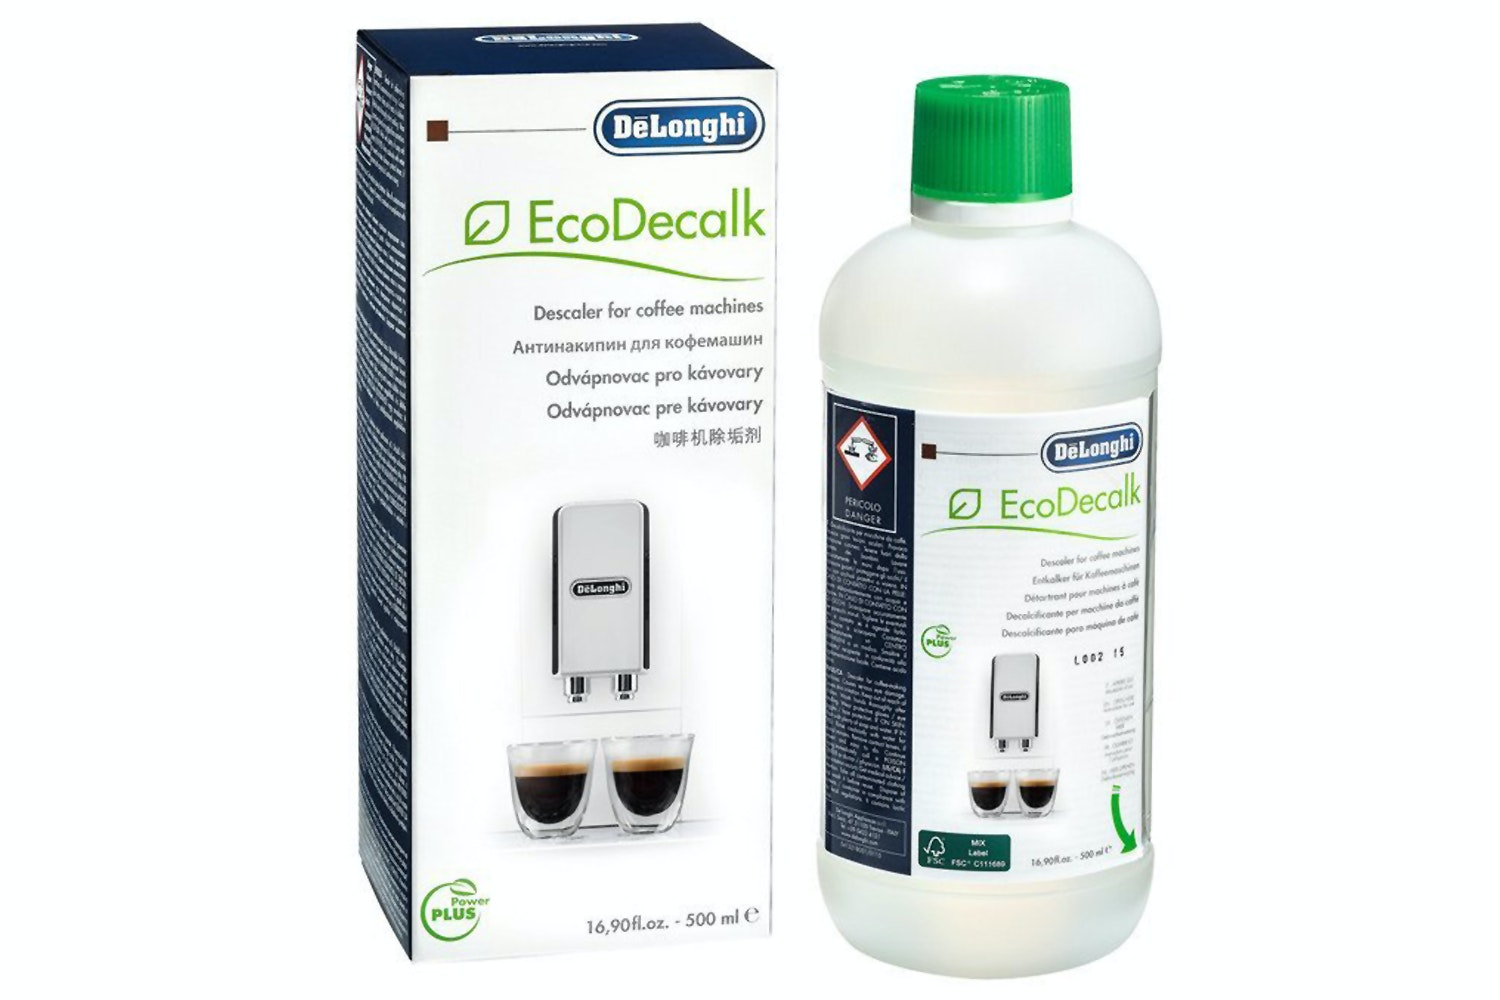 Delonghi Descaler Ecodecalk Solution | 5513296041